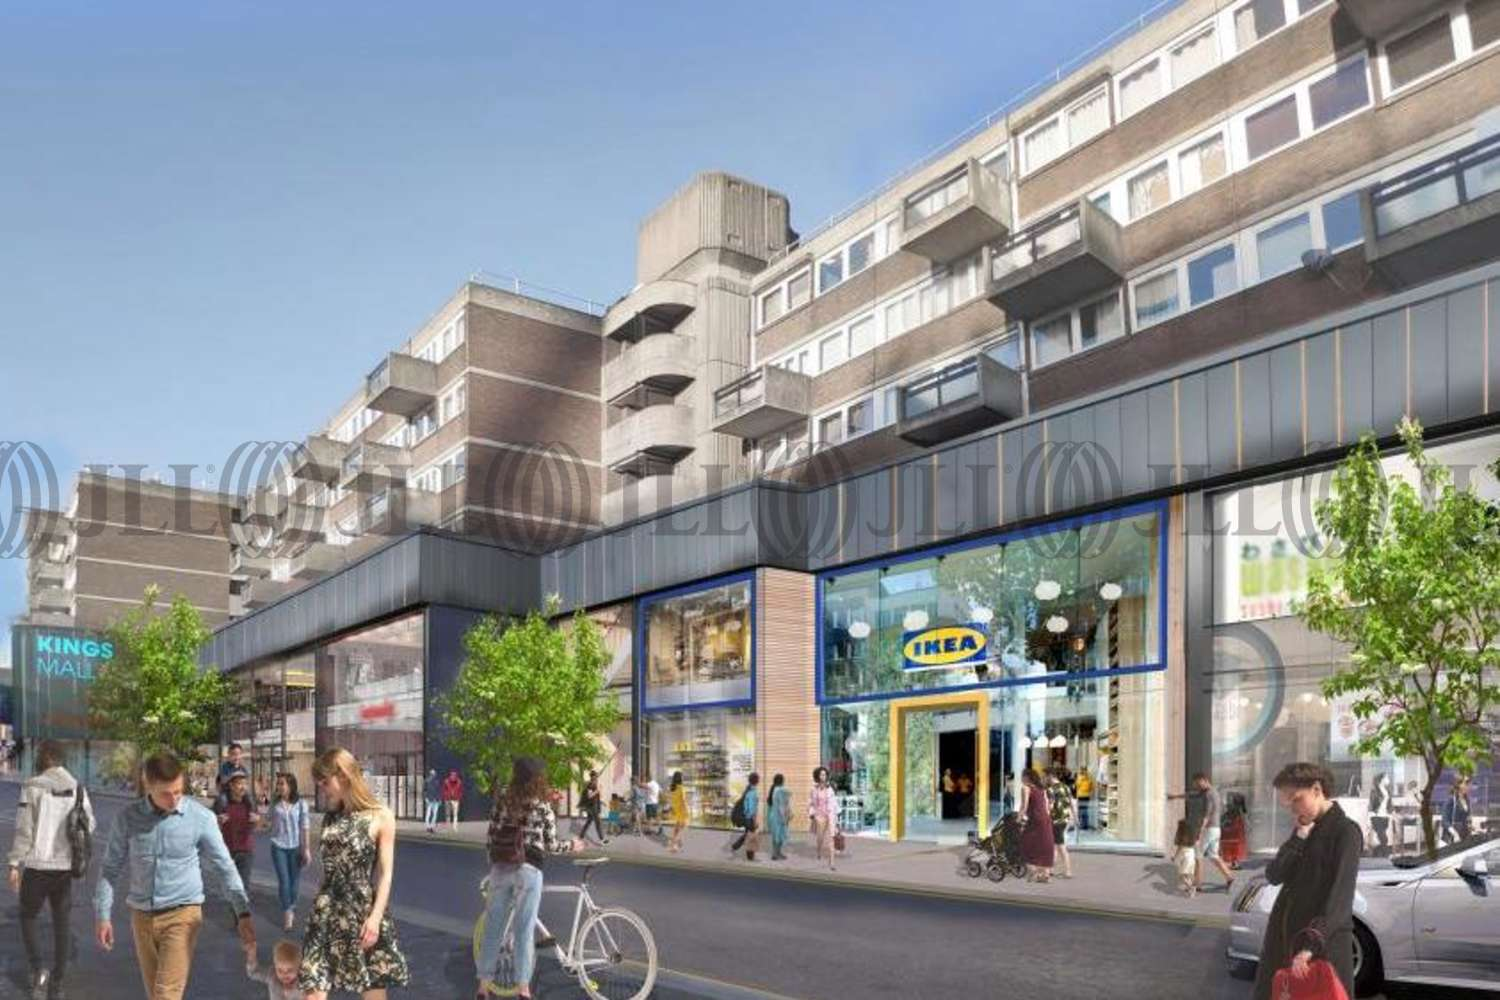 Retail shopping centre London, W6 9HW - Kings Mall Hammersmith